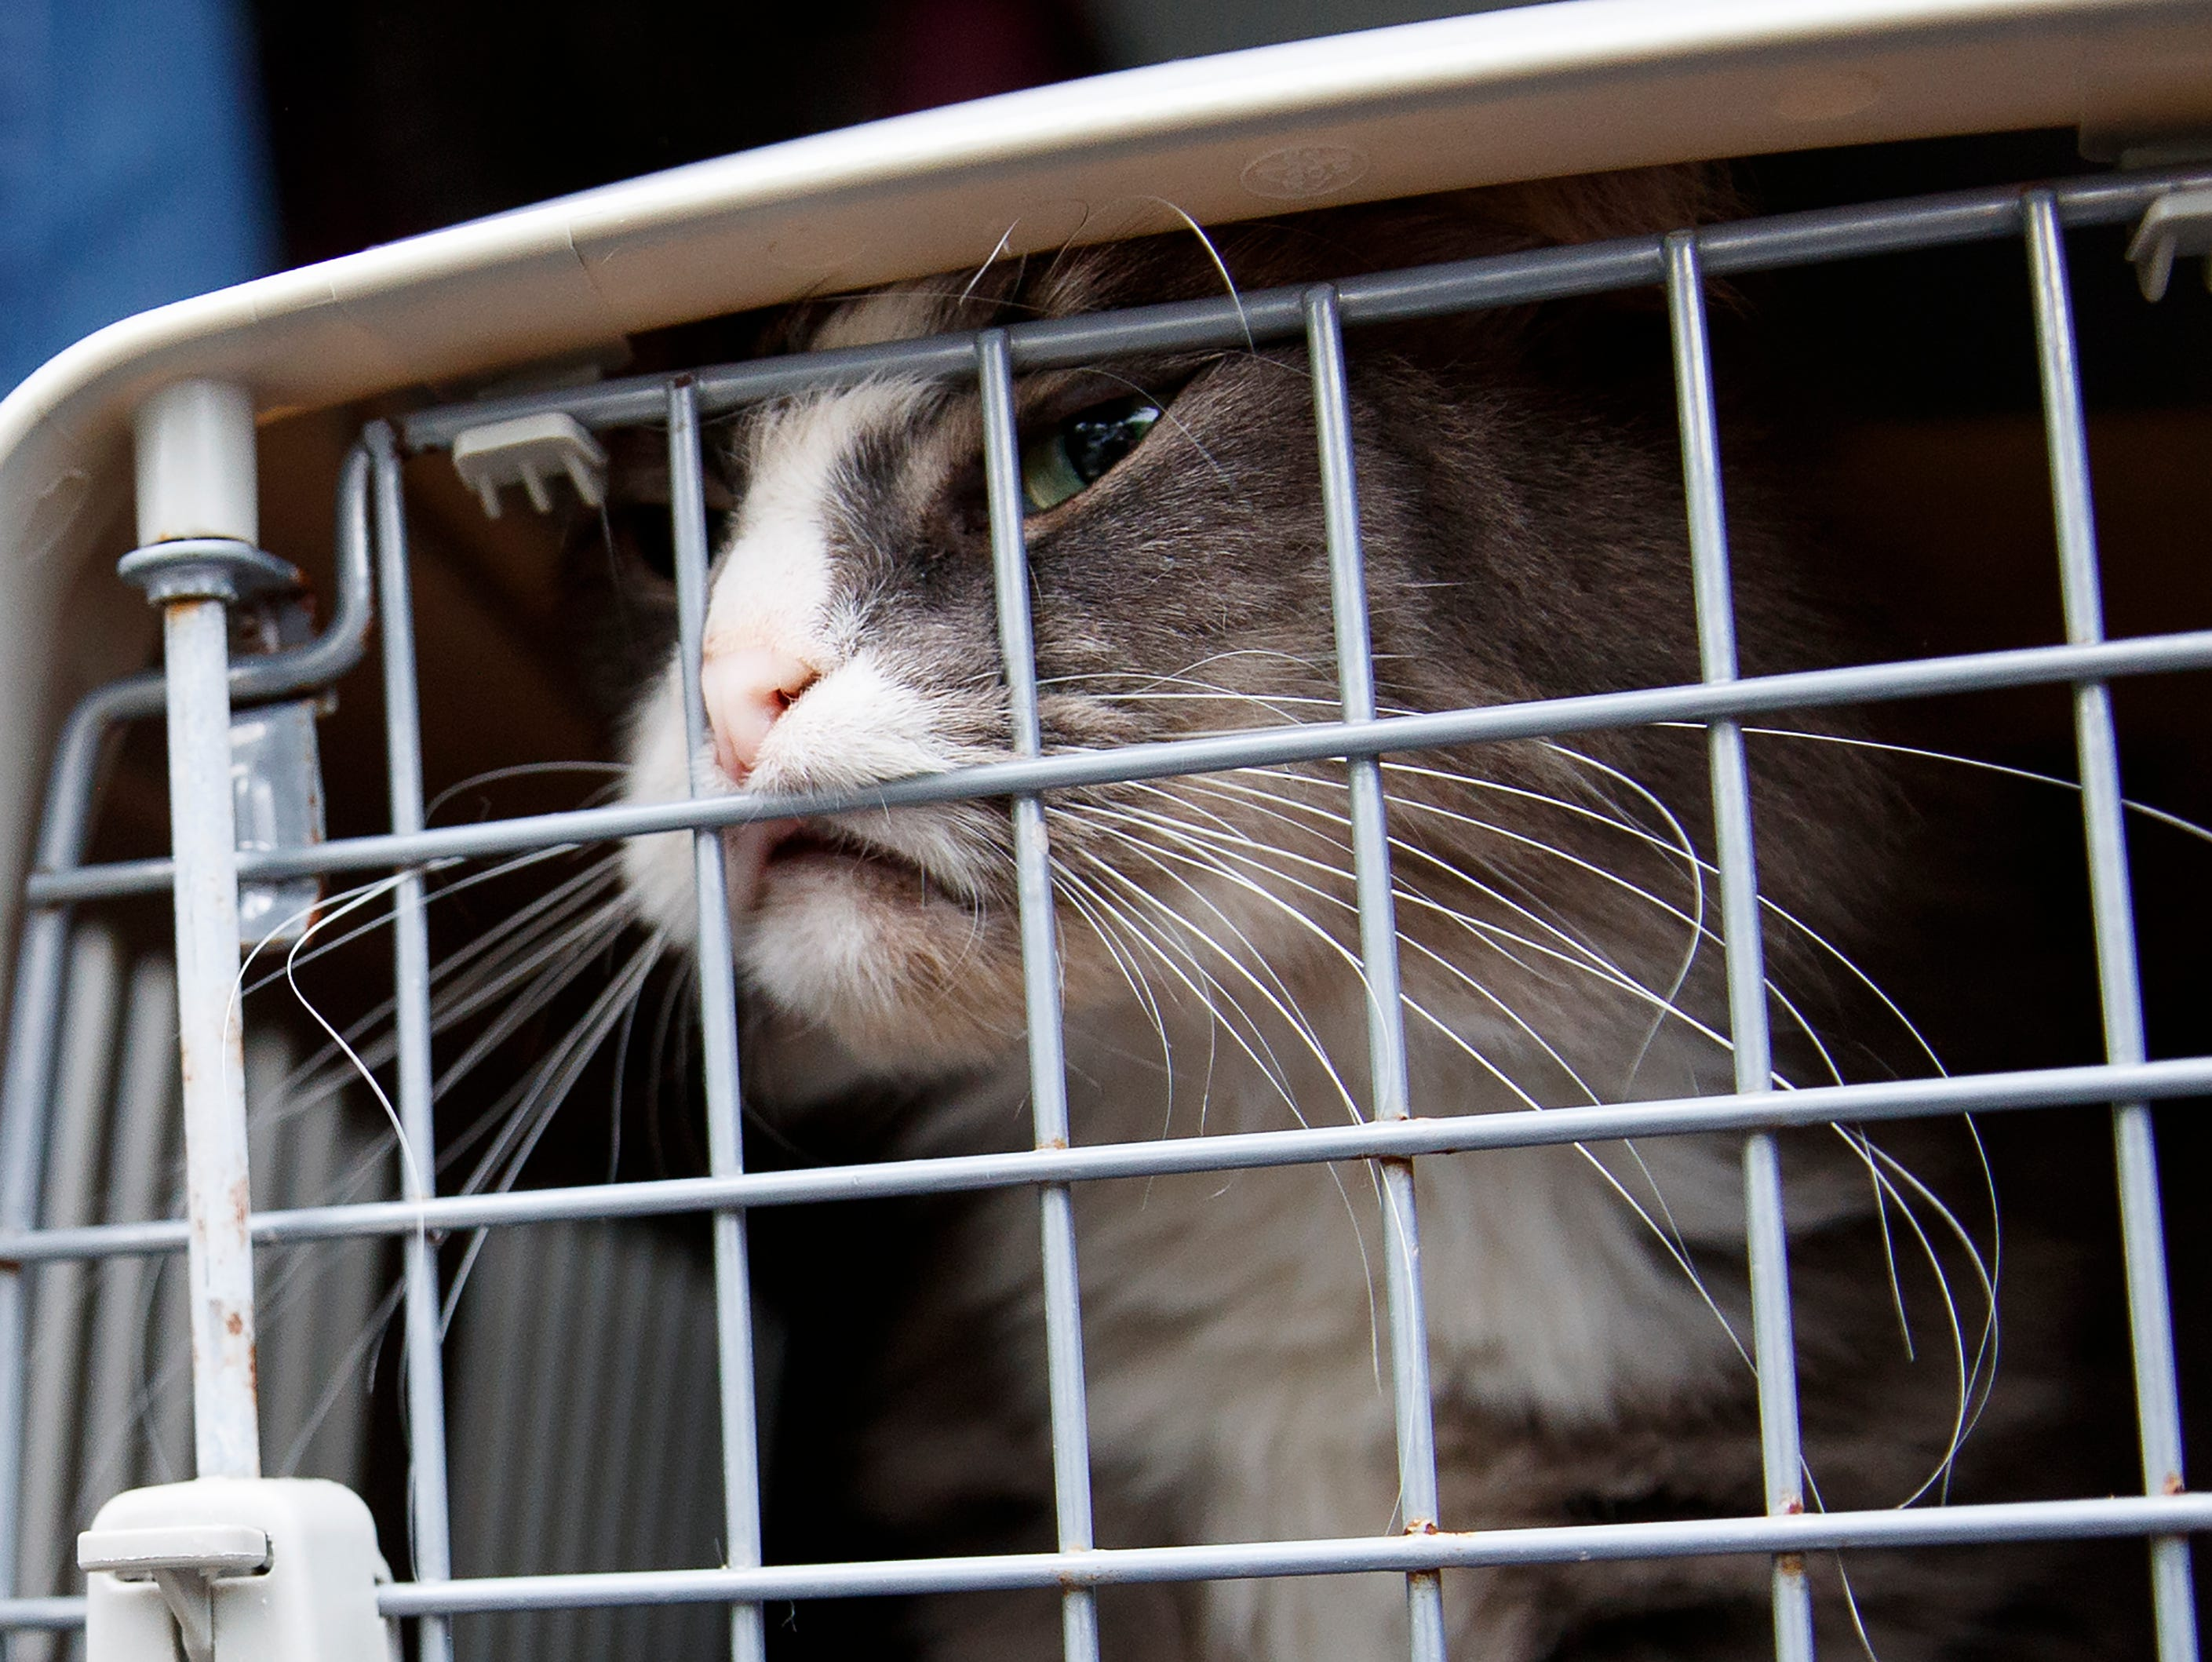 A long-haired tabby cat pushes against the crate door during the unloading of 26 cats and dogs from a van at Humane Rescue Alliance in Washington, Tuesday, Sept. 11, 2018, from Norfolk Animal Care and Control of Norfolk, Va., in advance of Hurricane Florence. People aren't the only ones evacuating to get out of the path of Hurricane Florence. The dogs and cats will all be available for adoption.